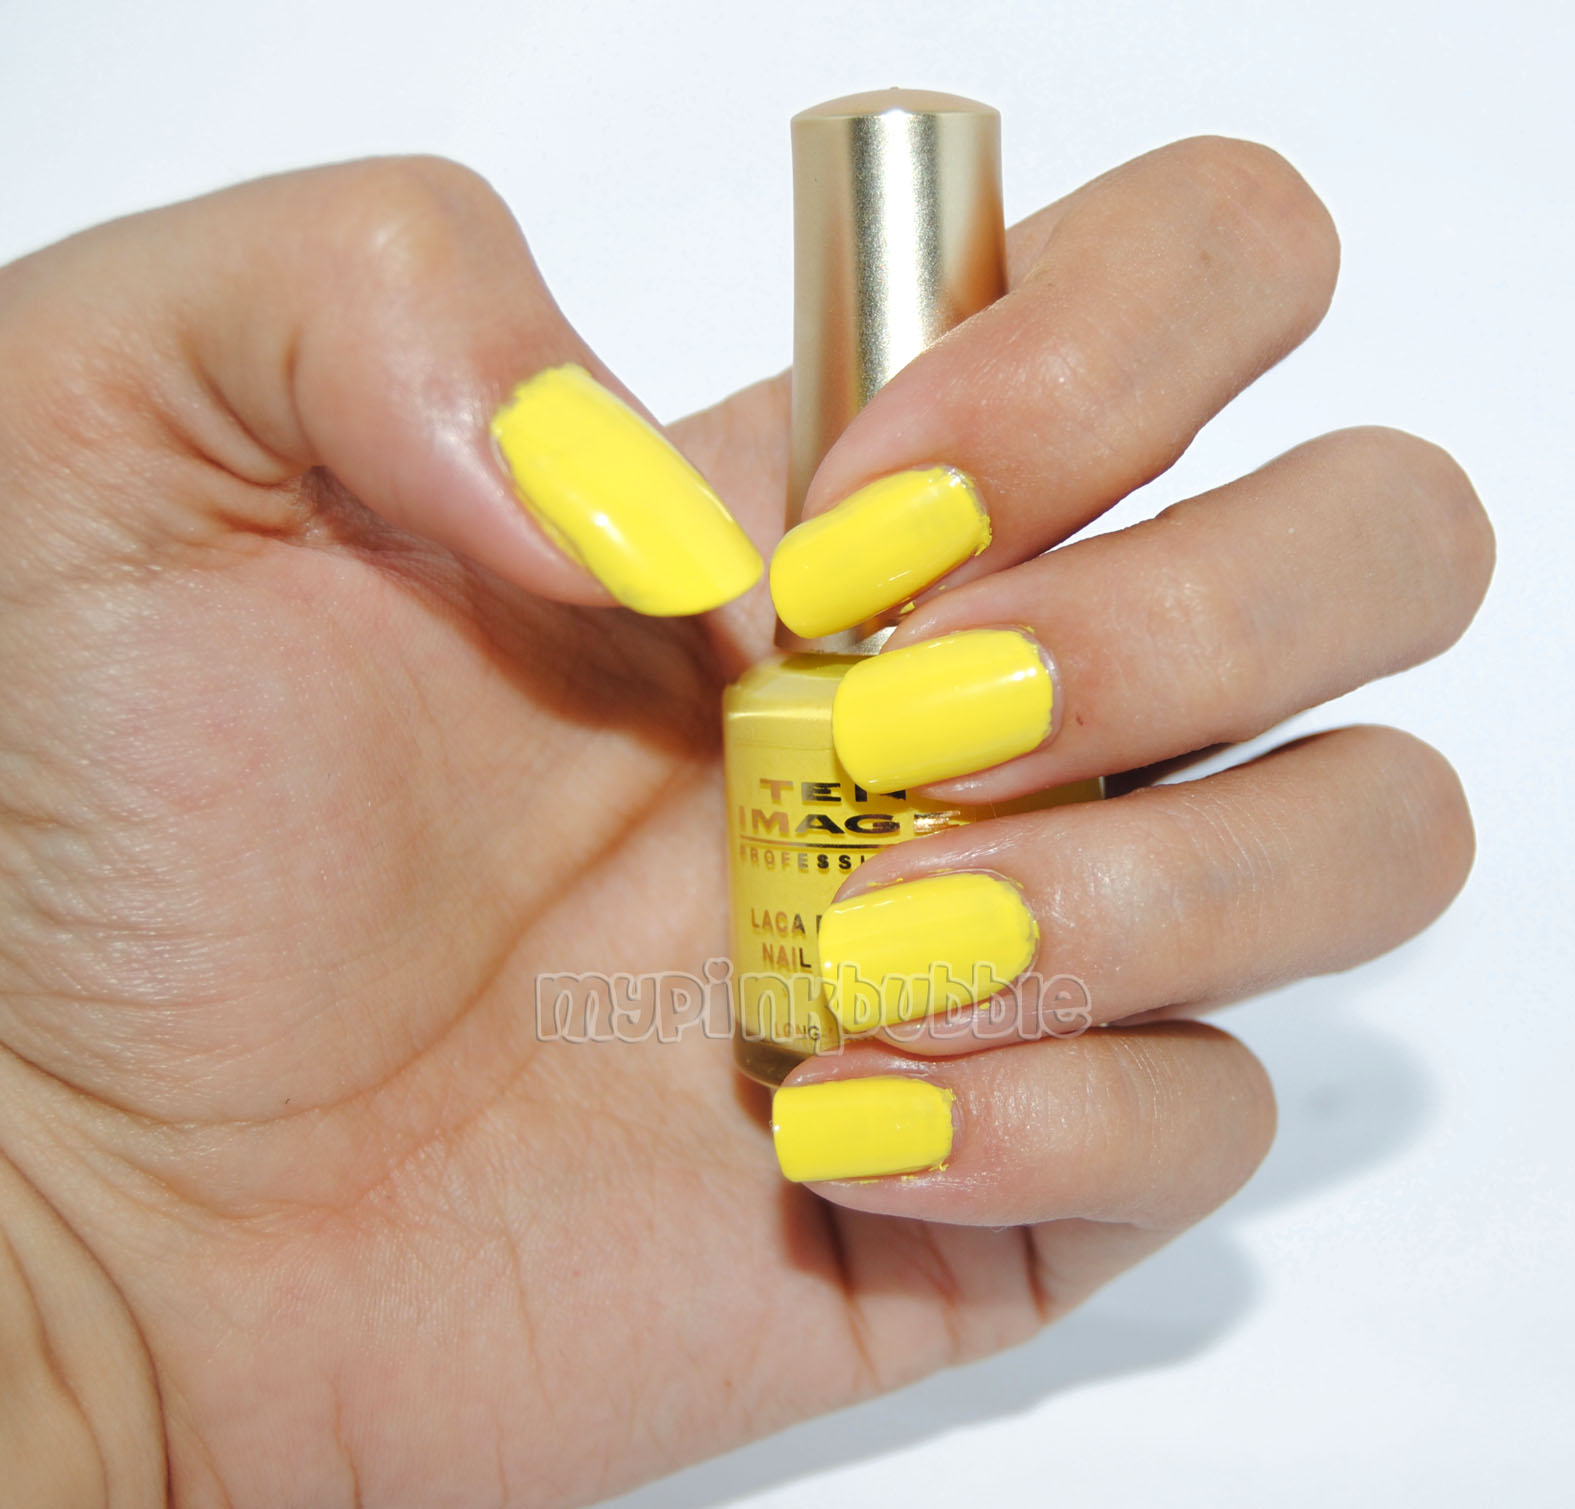 Ten image laca de uñas 311 Daiquiri swatch